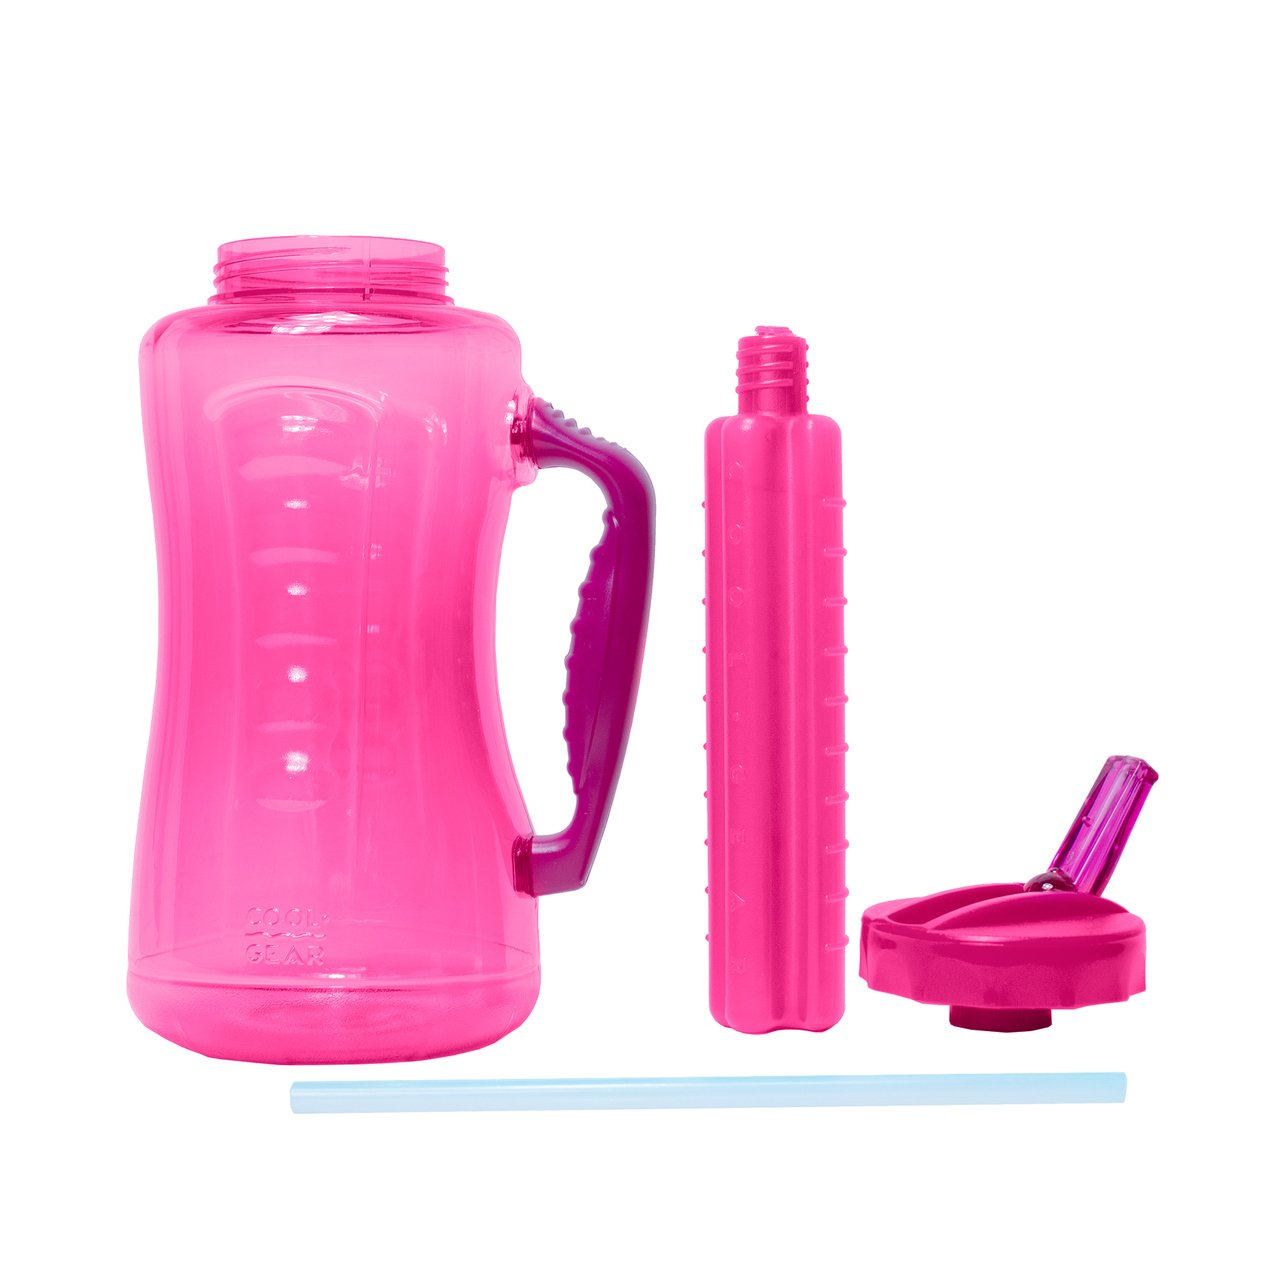 Cool Gear Big Swig EZ-Freeze Hydrate 64oz Water Bottle BPA Free with Twist and Lock Feature (Pink) by COOL GEAR